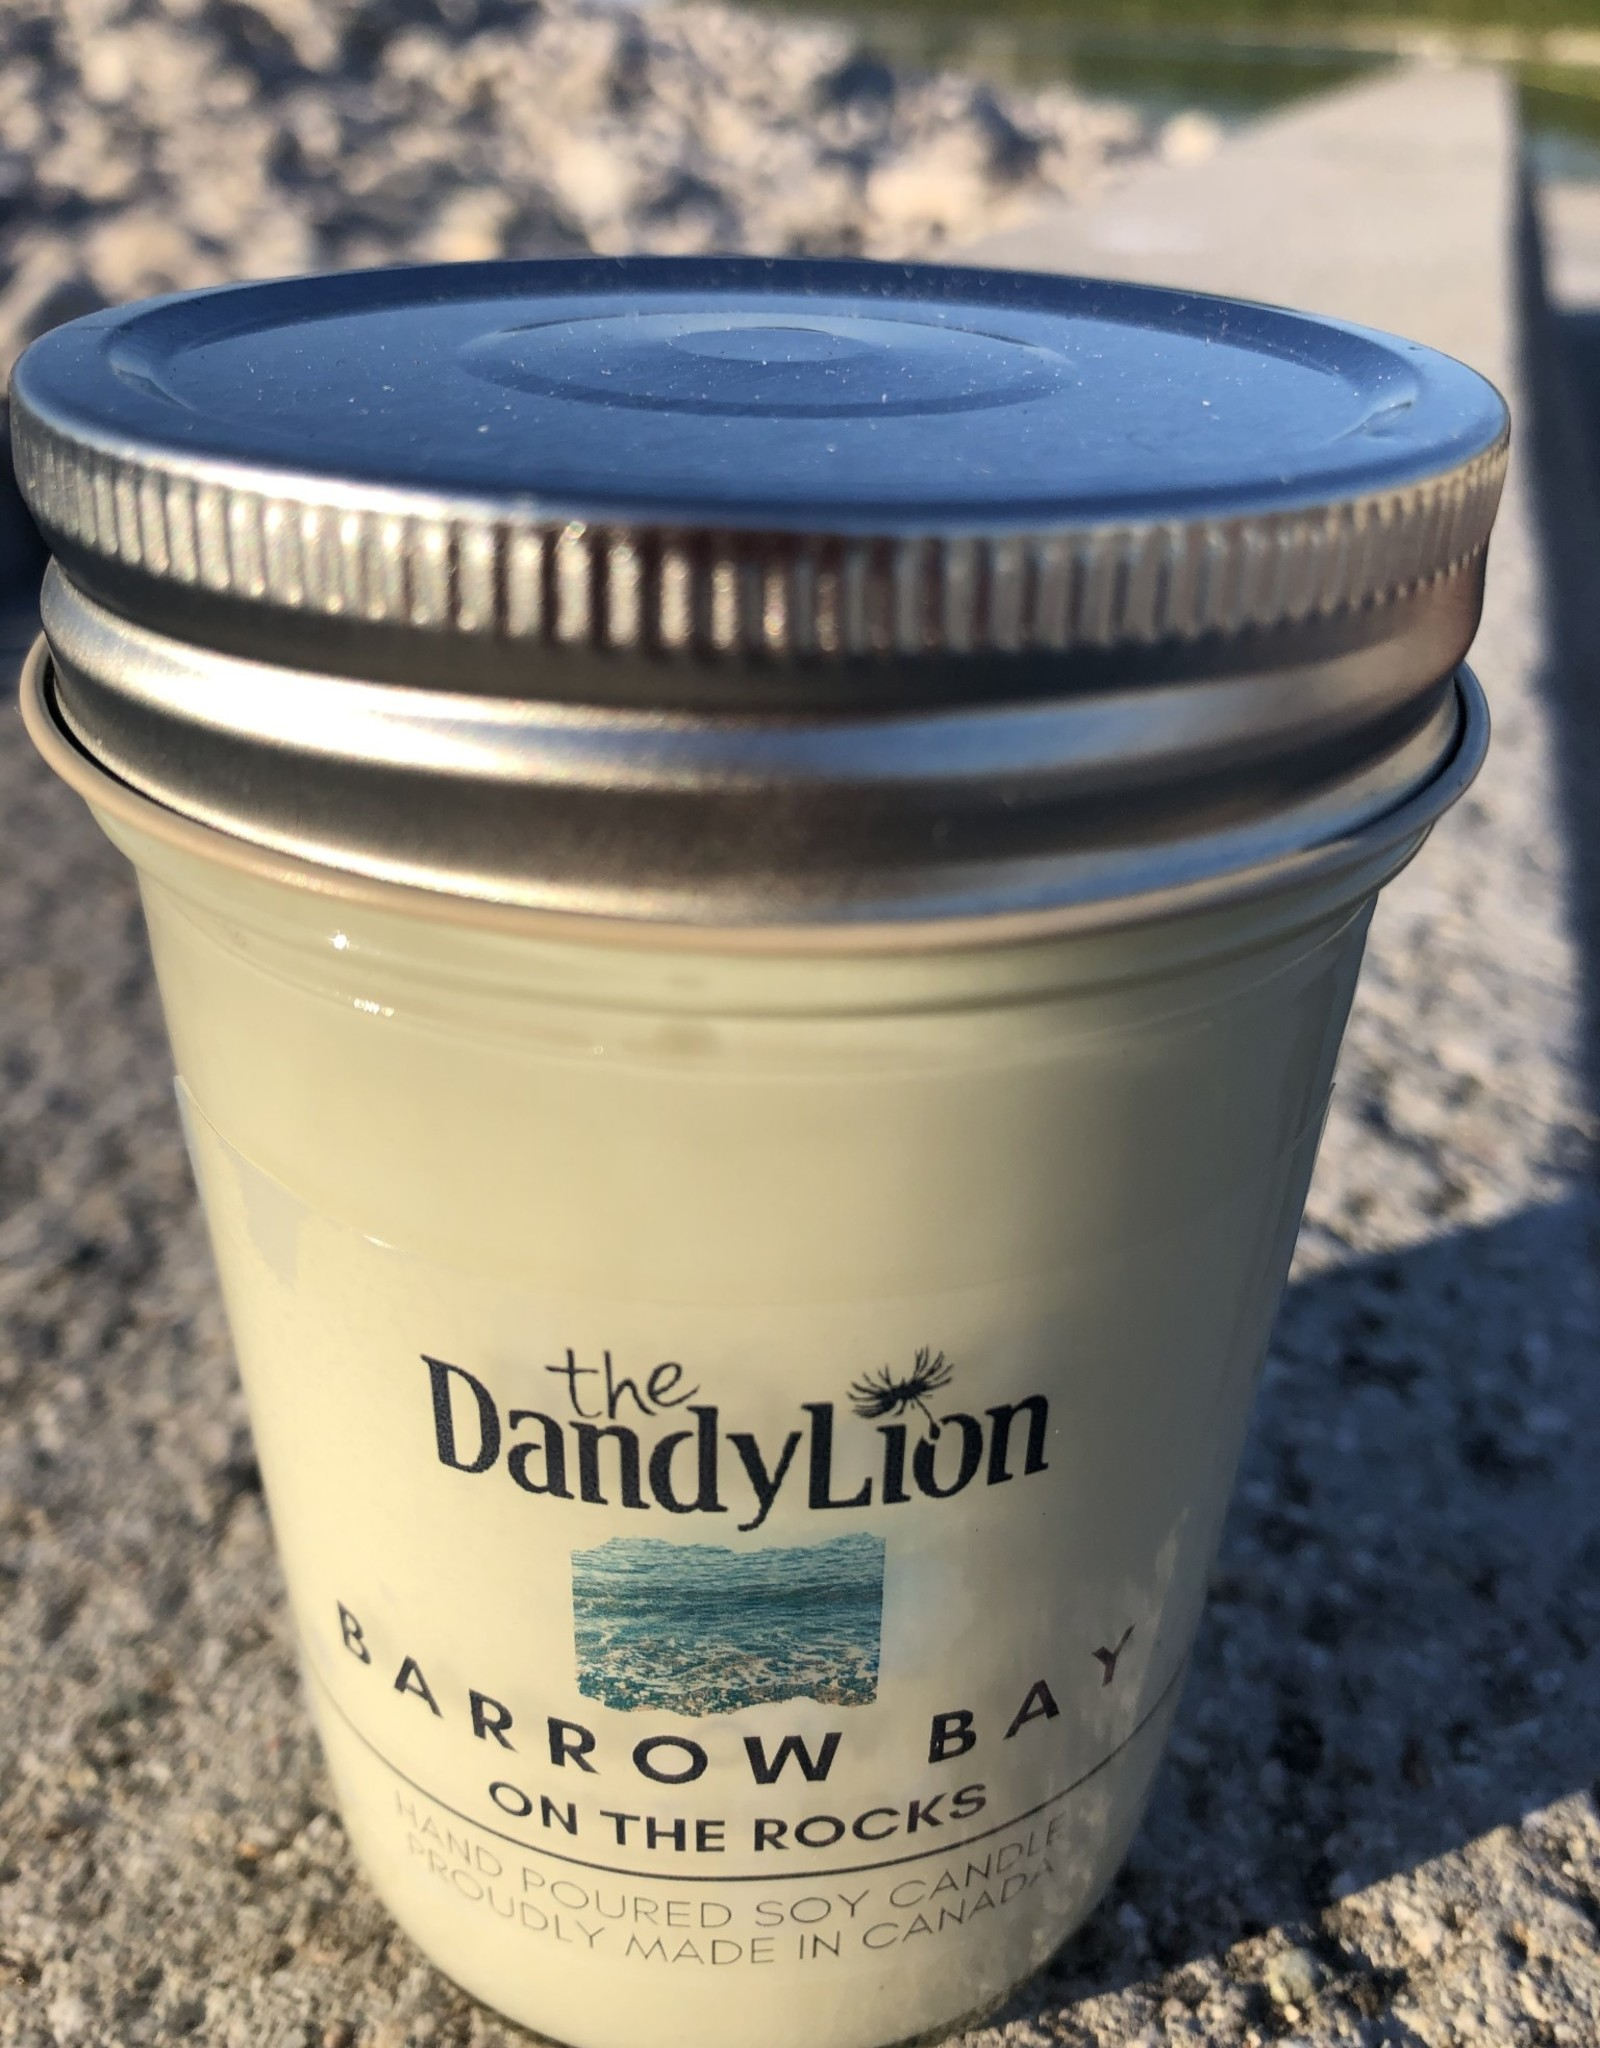 serendipity Barrow Bay 8 oz soy candle